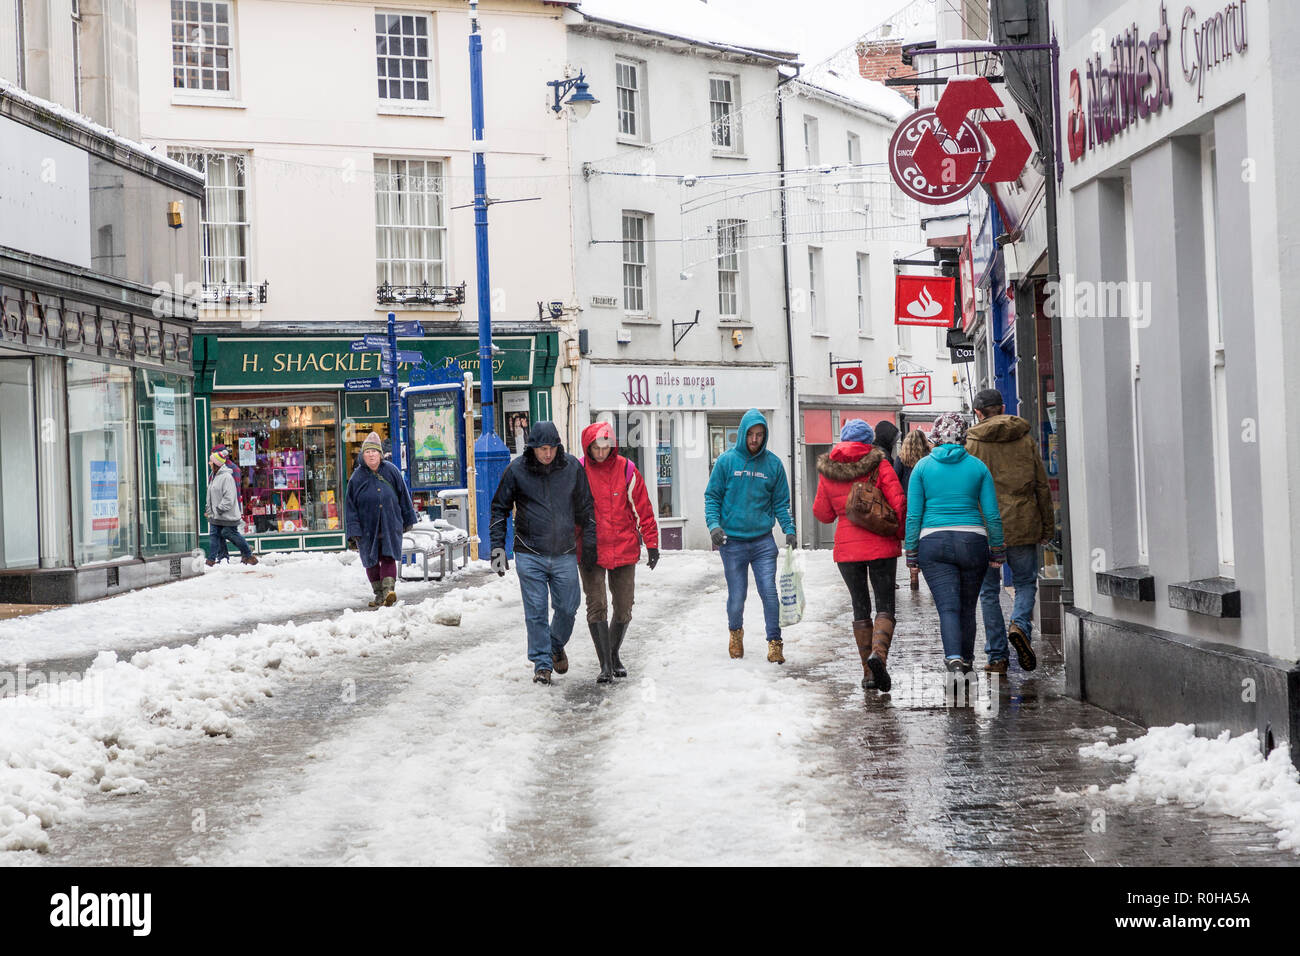 People in icy shopping street, Abergavenny, Wales, UK - Stock Image